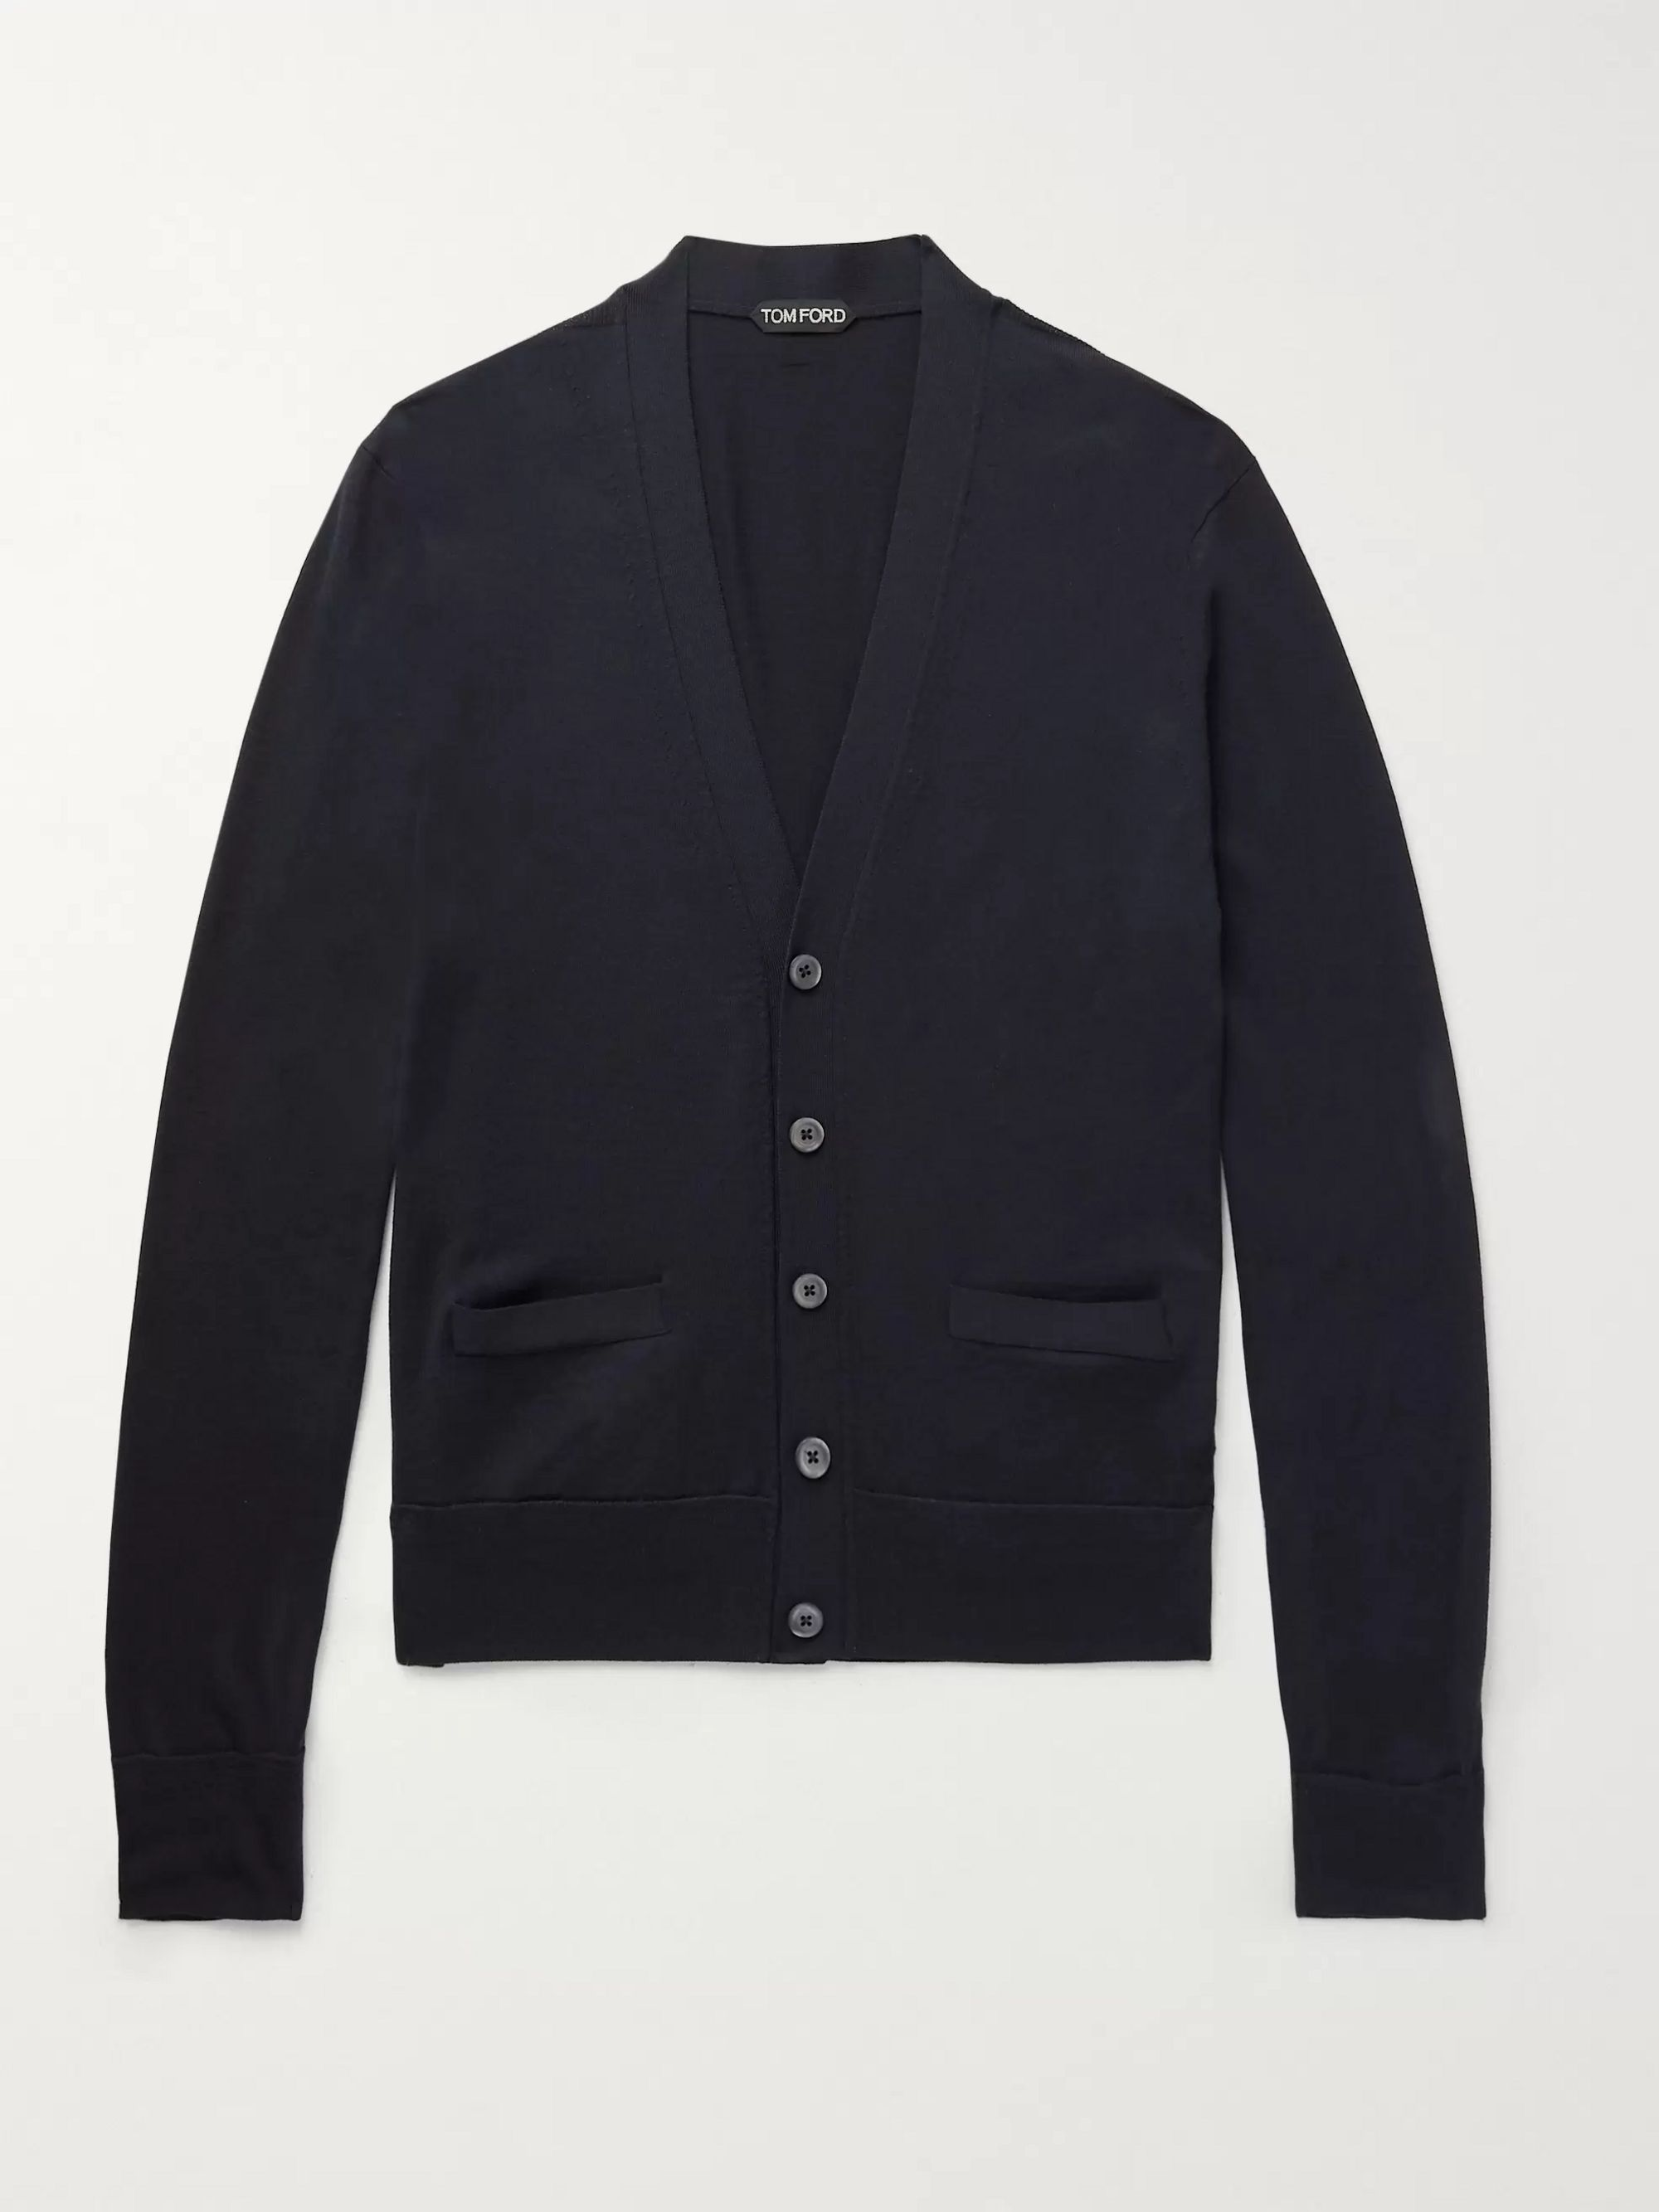 TOM FORD Wool Cardigan